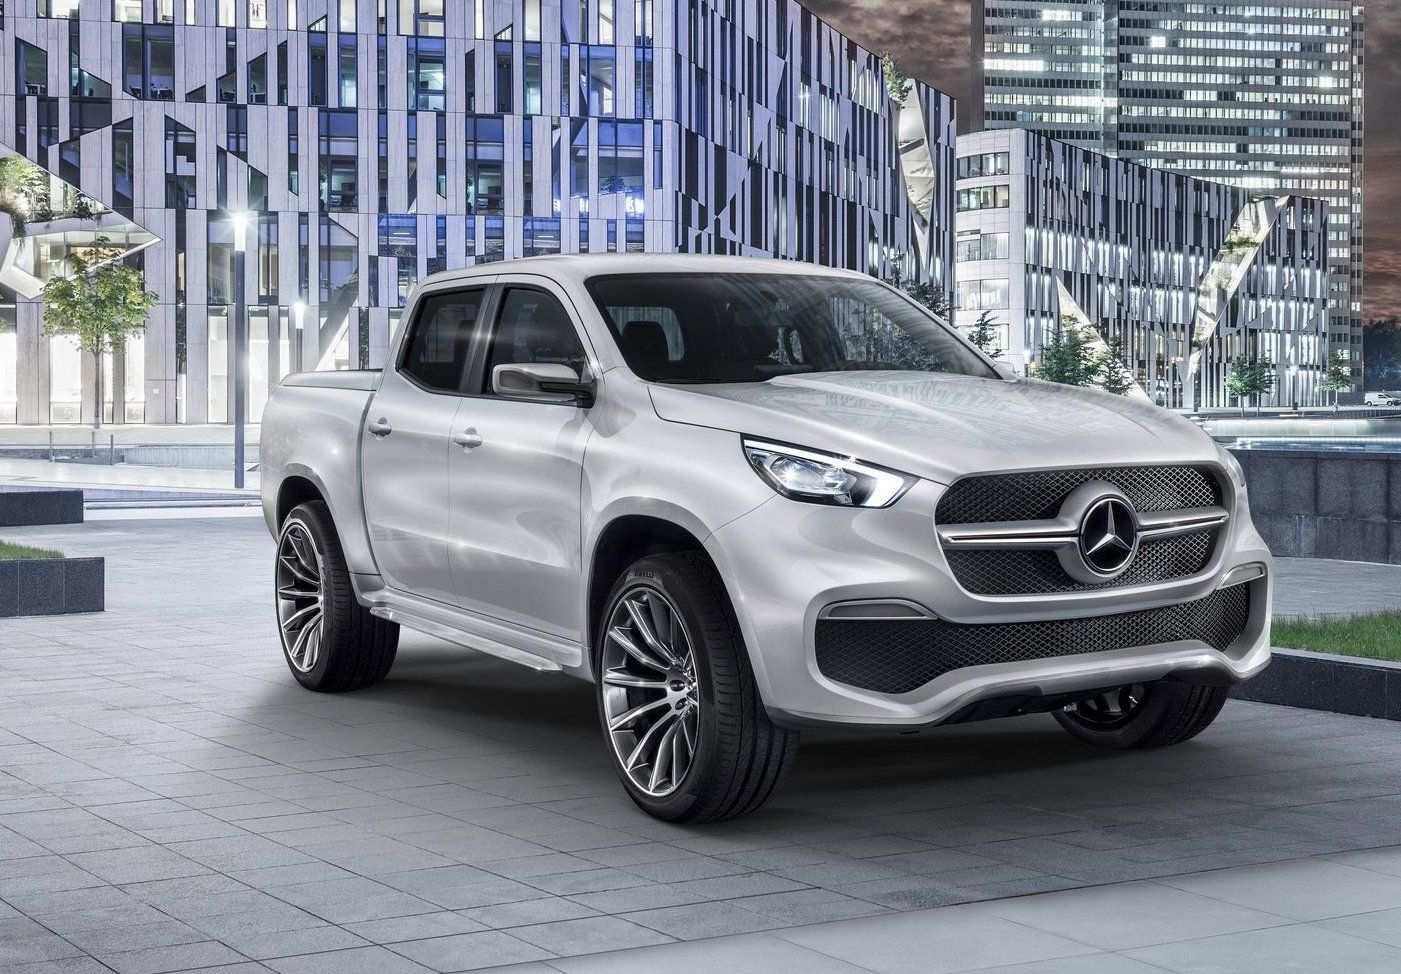 69 All New New 2019 Mercedes Ute Review And Specs Photos with New 2019 Mercedes Ute Review And Specs